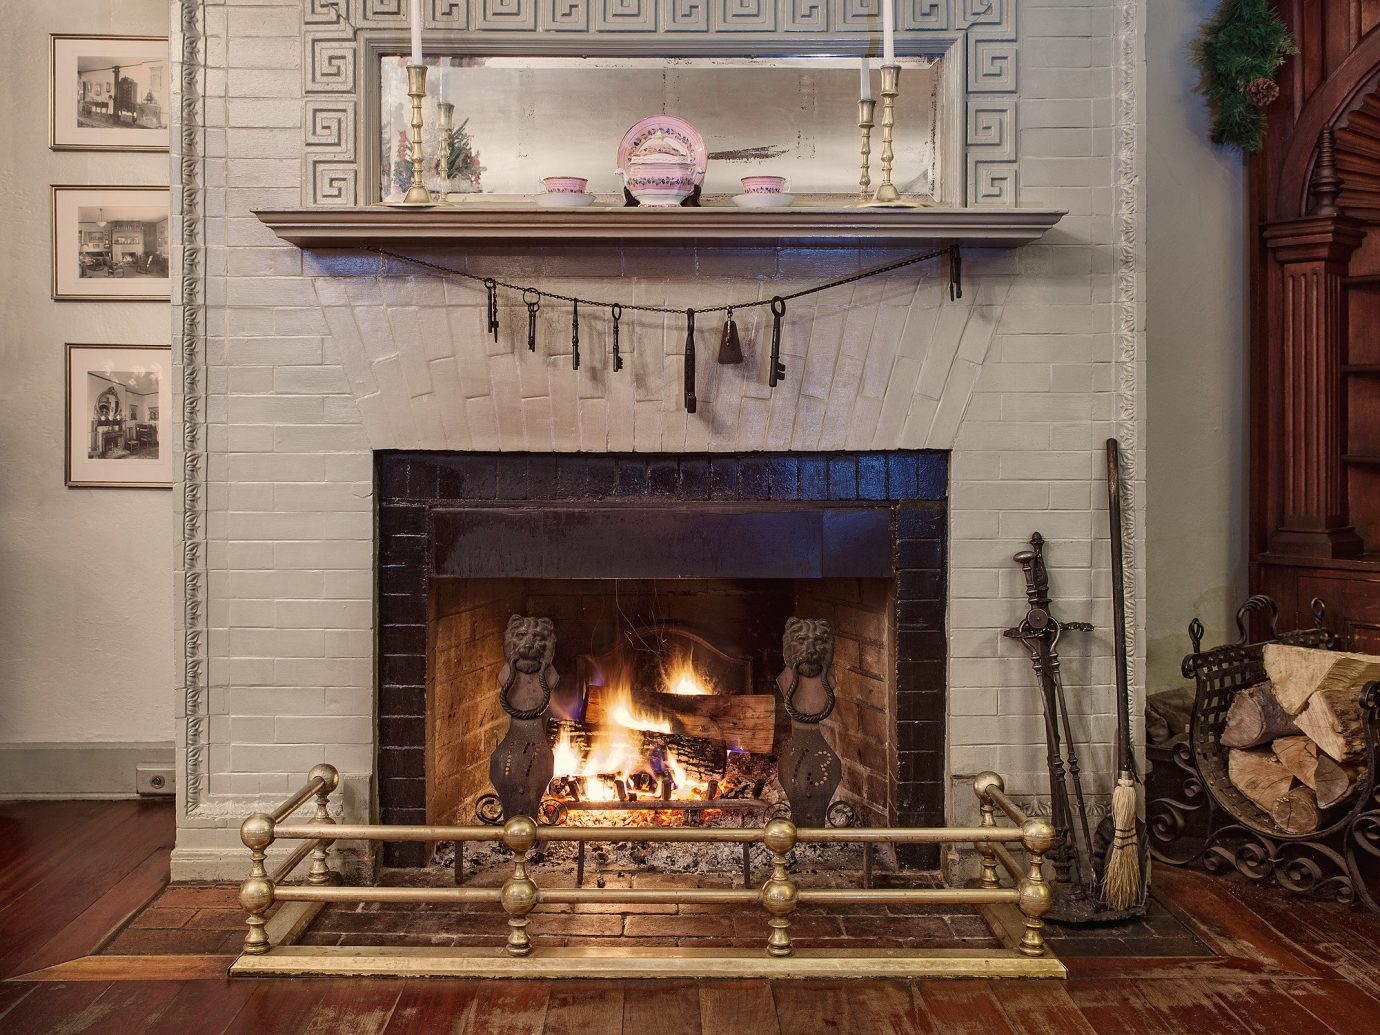 Romance Trip Ideas Fireplace fire indoor floor Living hearth room wood burning stove interior design living room home furniture flooring stone